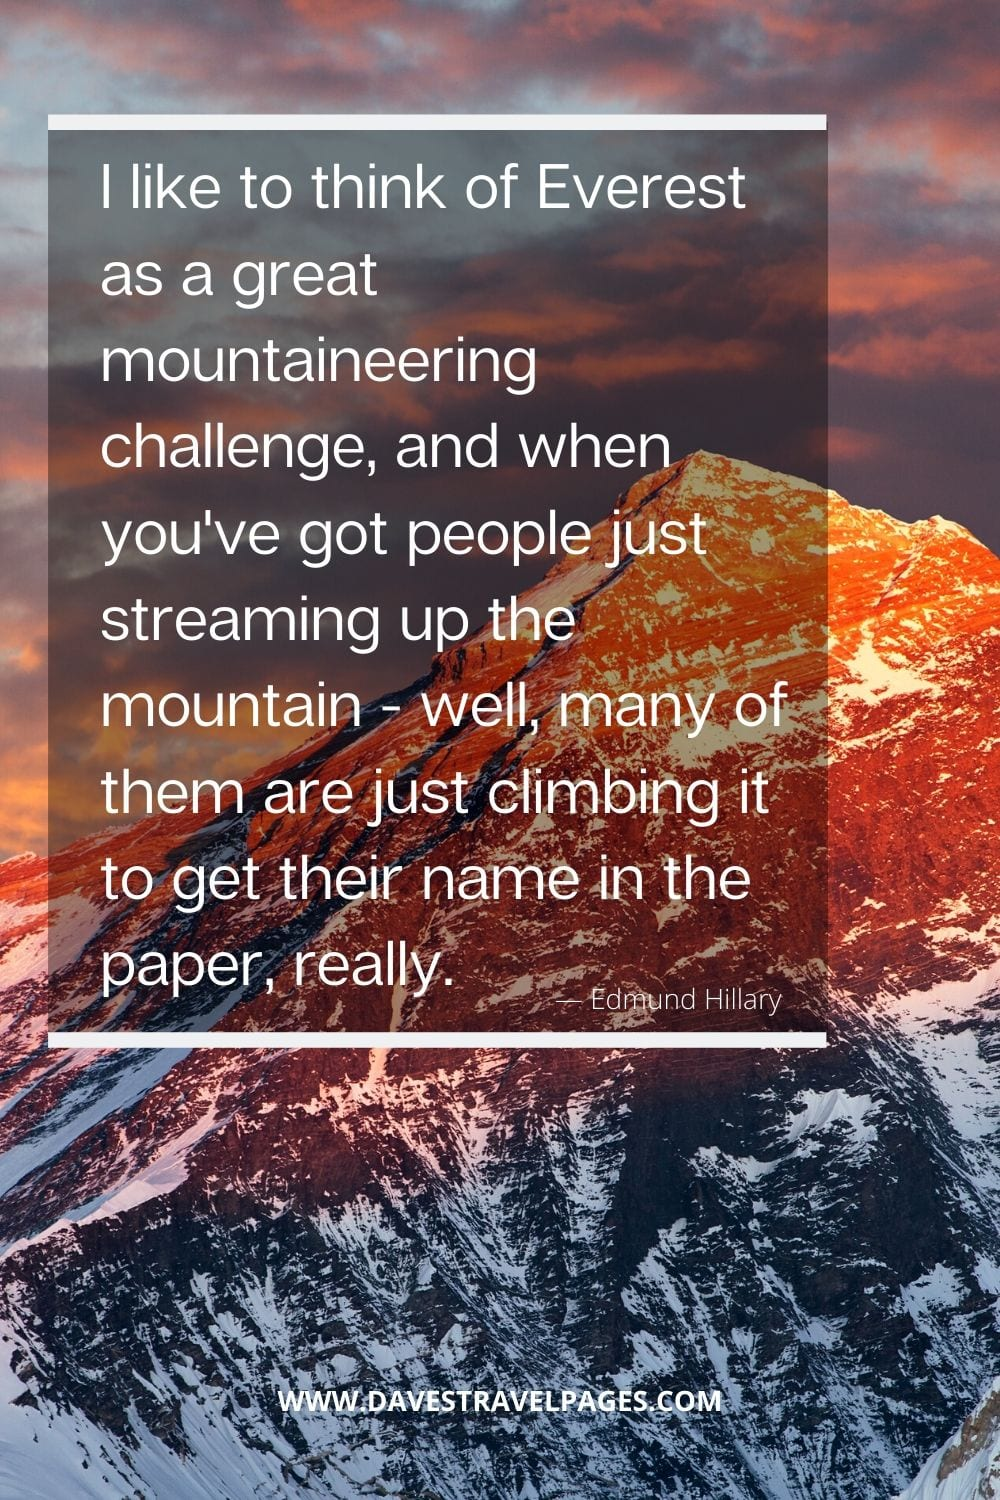 """I like to think of Everest as a great mountaineering challenge, and when you've got people just streaming up the mountain - well, many of them are just climbing it to get their name in the paper, really."" - Edmund Hillary"